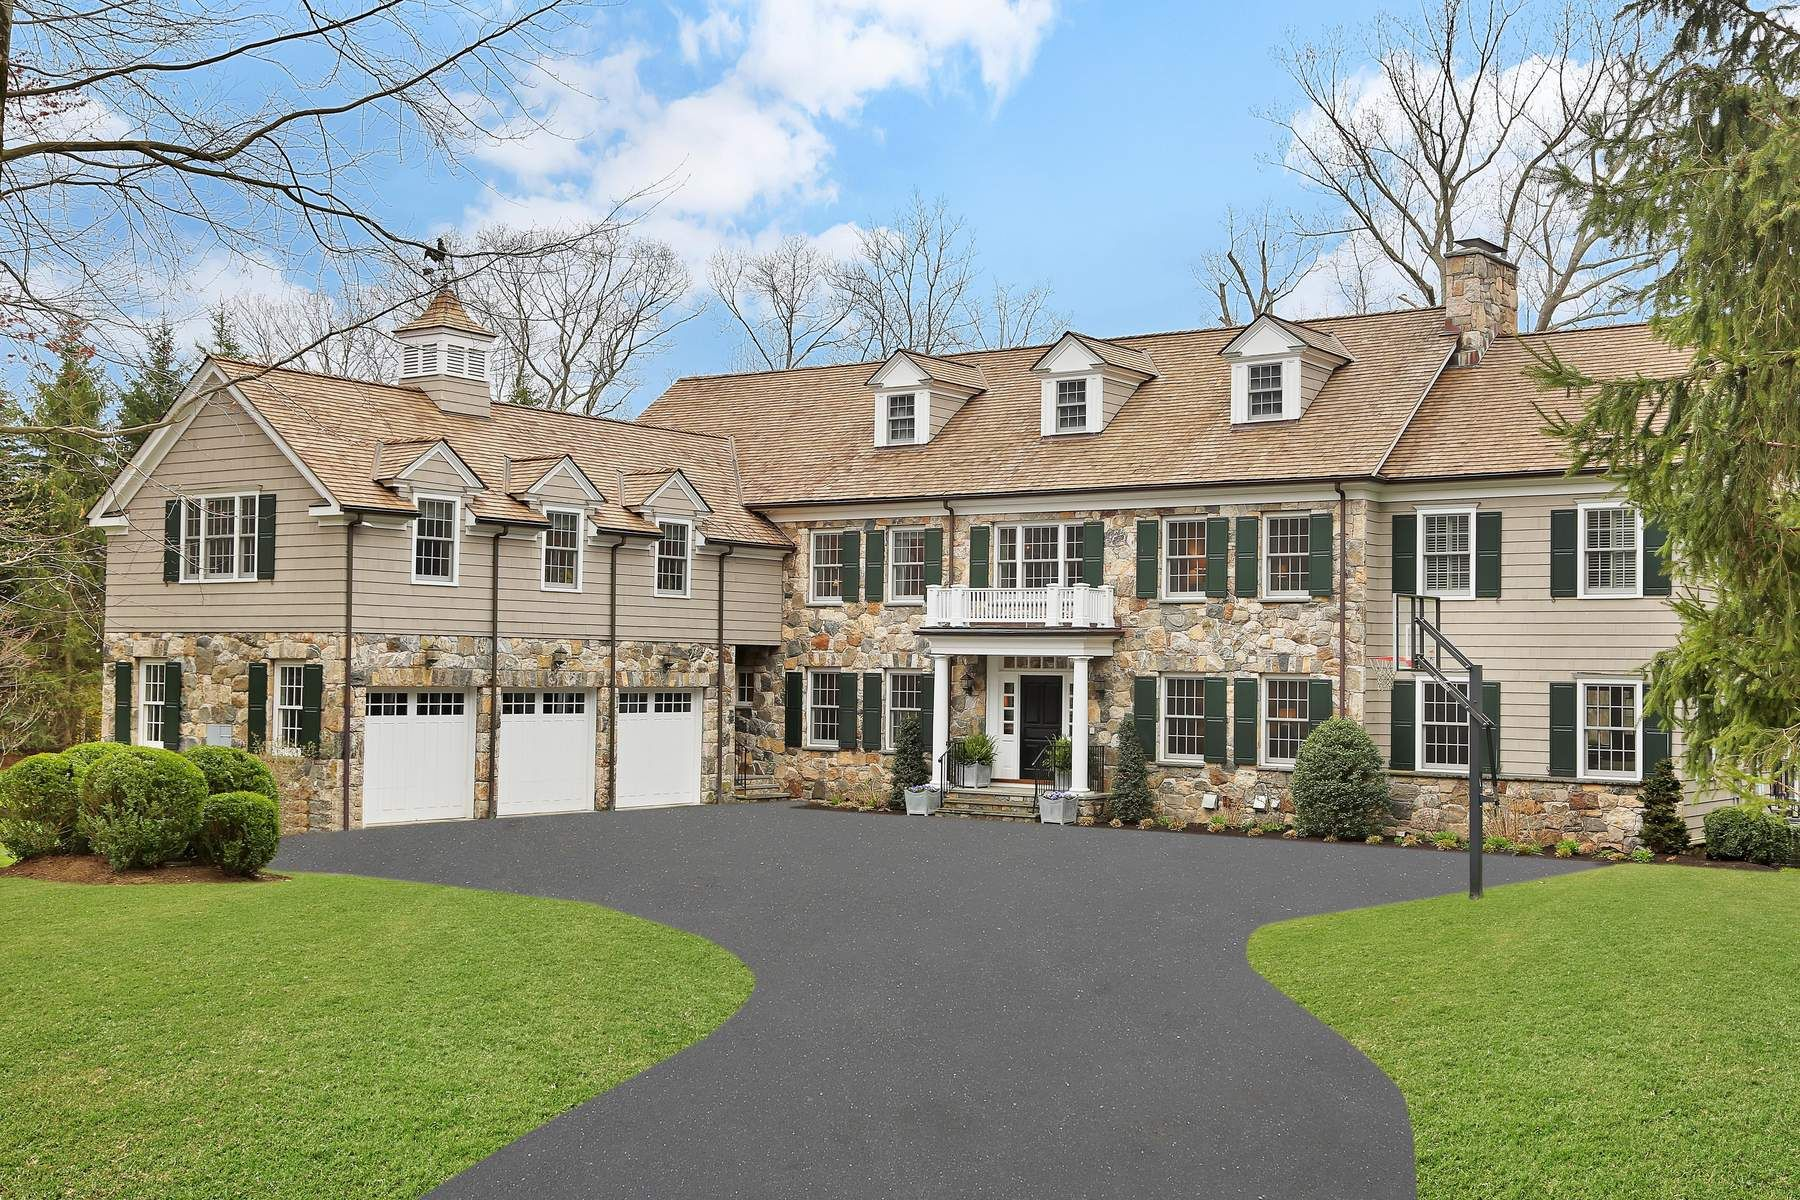 Single Family Home for Sale at 55 Baldwin Farms South 55 Baldwin Farms South Greenwich, Connecticut 06831 United States